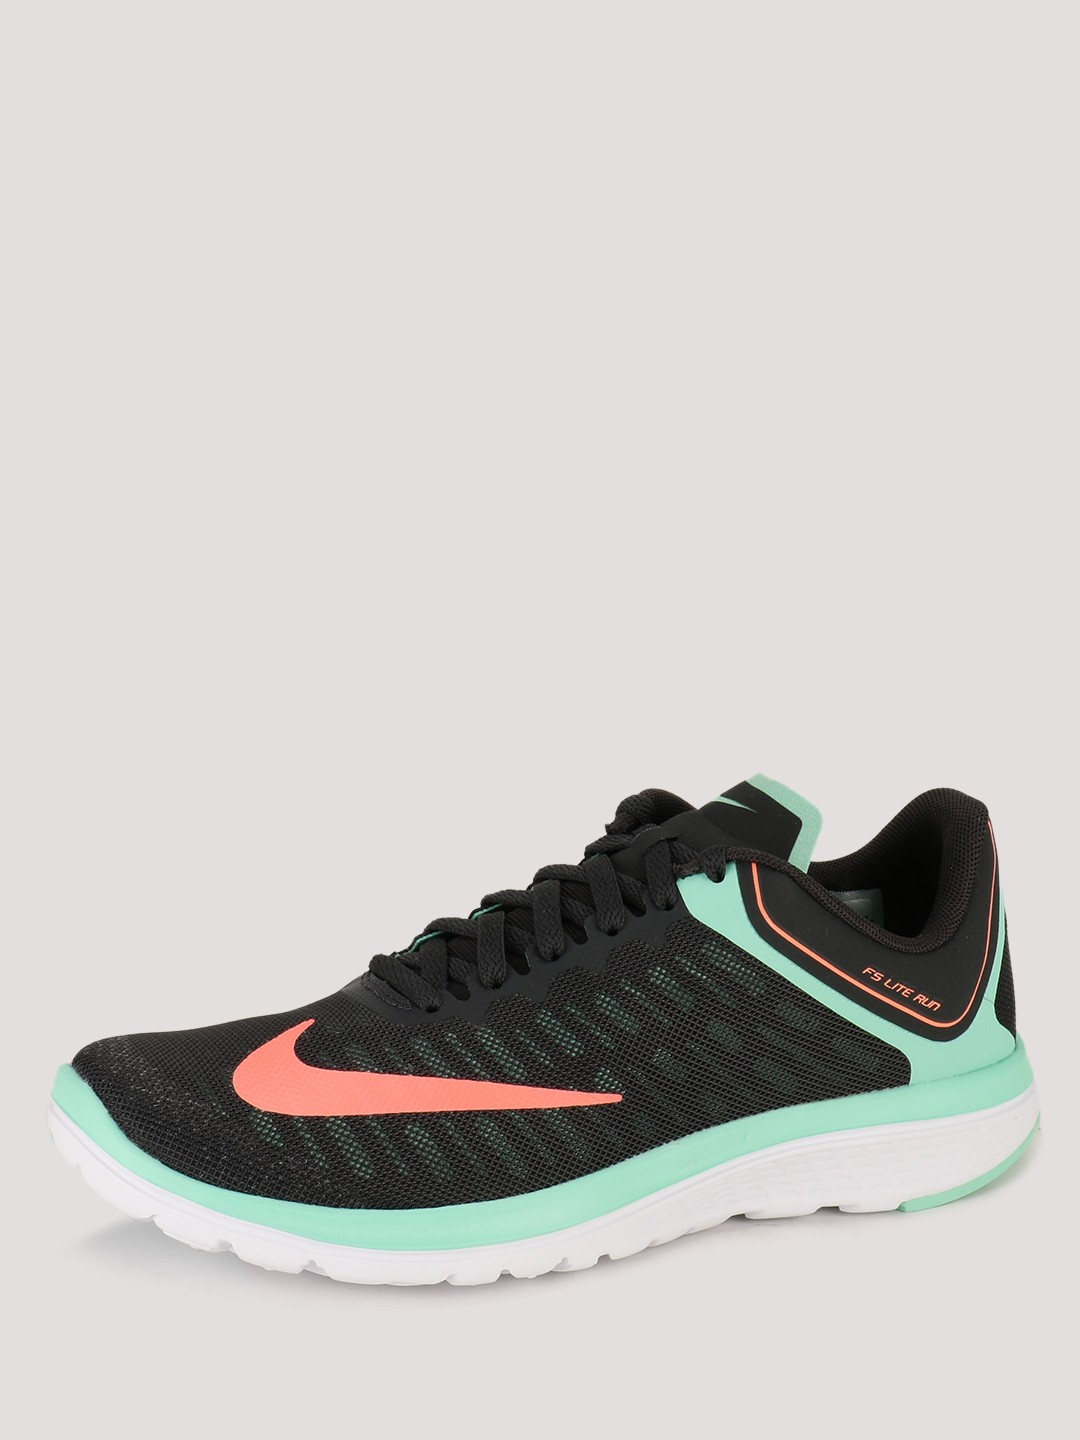 Womens Nike Fs Lite Run 2